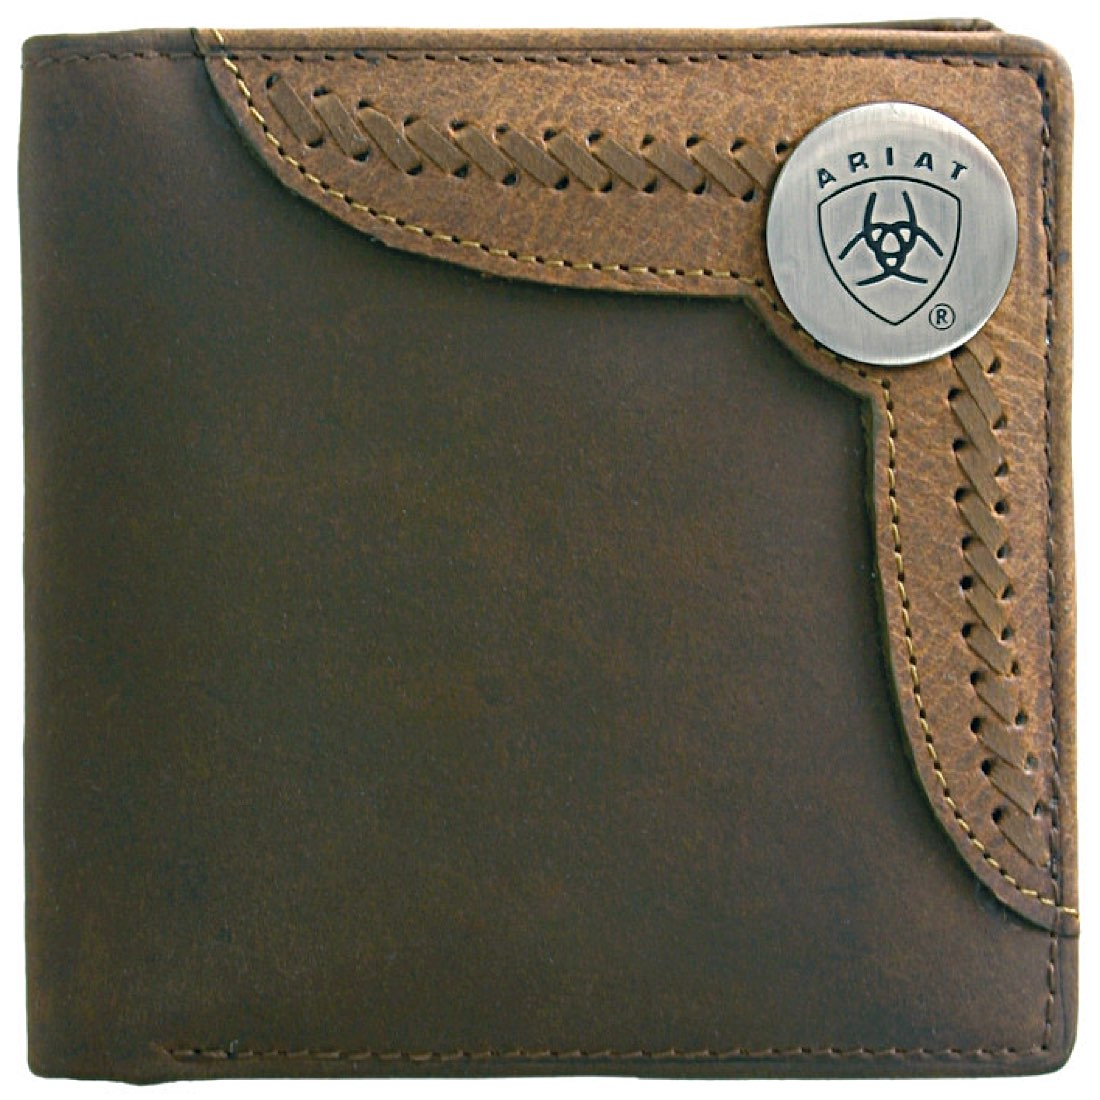 Bi Fold Wallet-Brown / Lite Tan